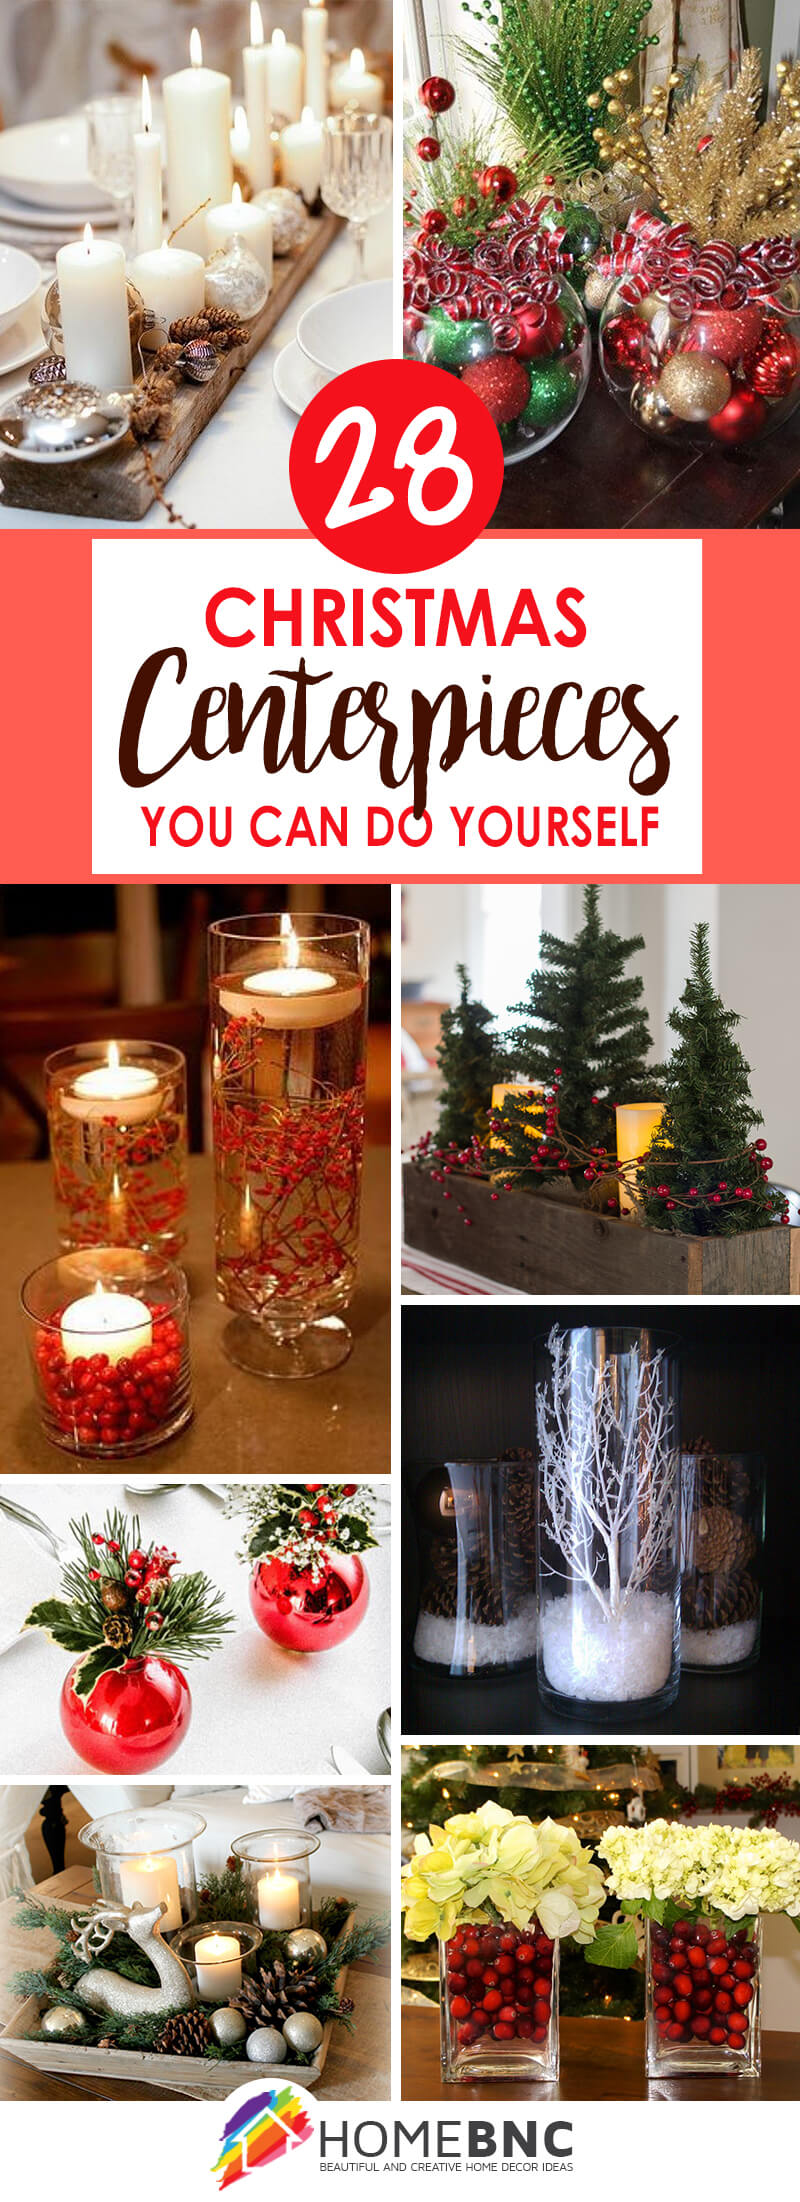 28 Best DIY Christmas Centerpieces (Ideas and Designs) for ...